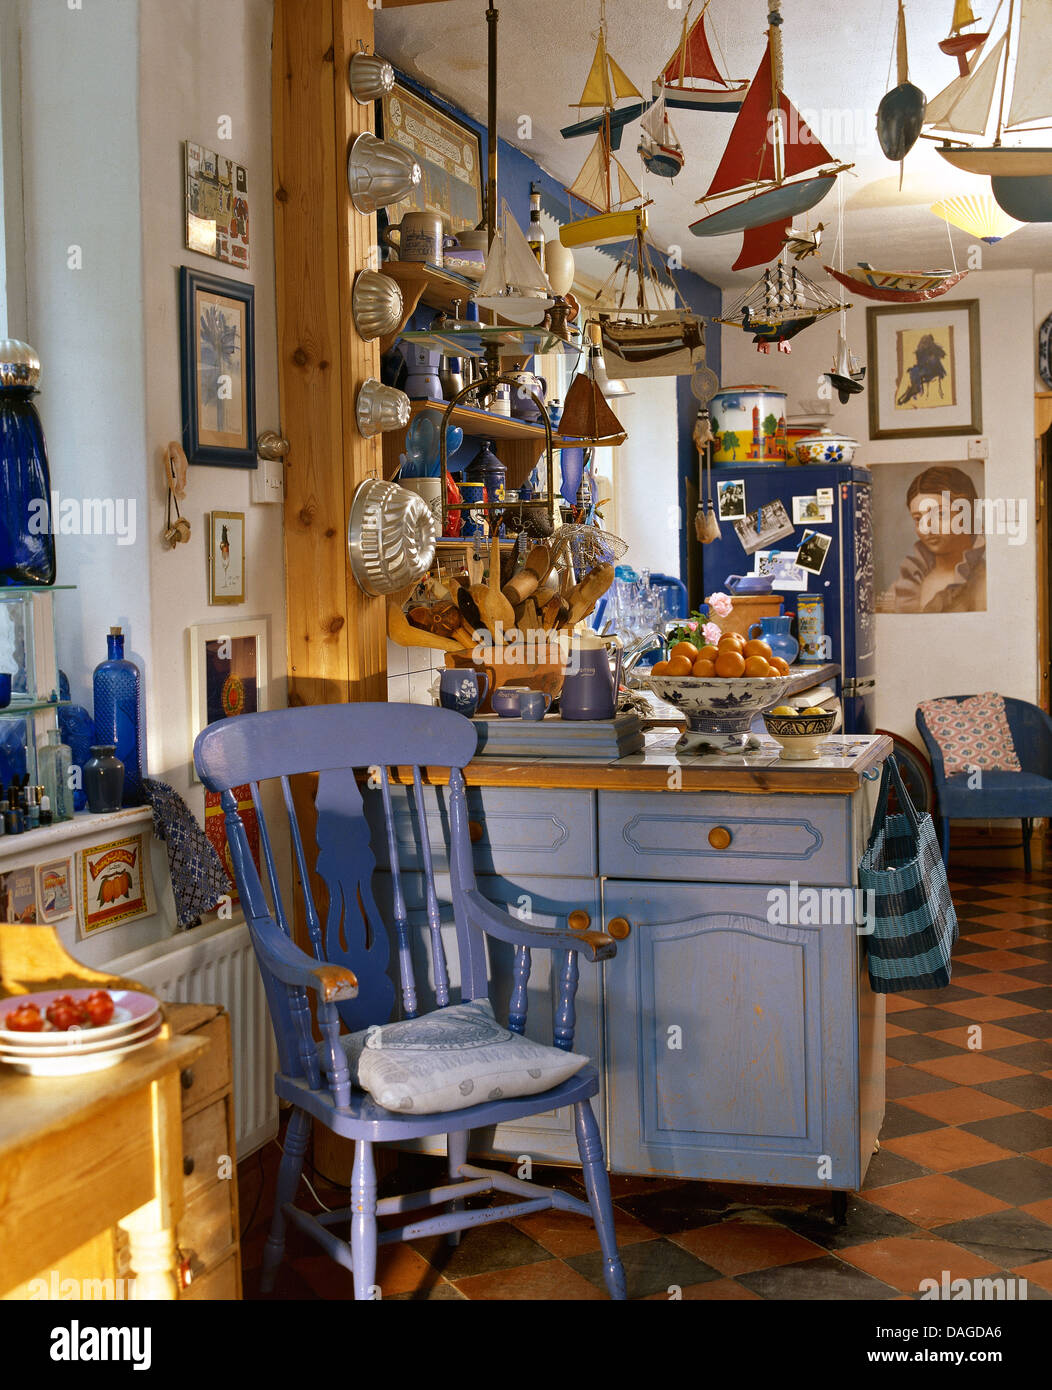 Blue Painted Windsor Chair Beside Blue Fitted Unit In Cluttered Cottage  Kitchen With Toy Sailing Boats Hanging From Ceiling